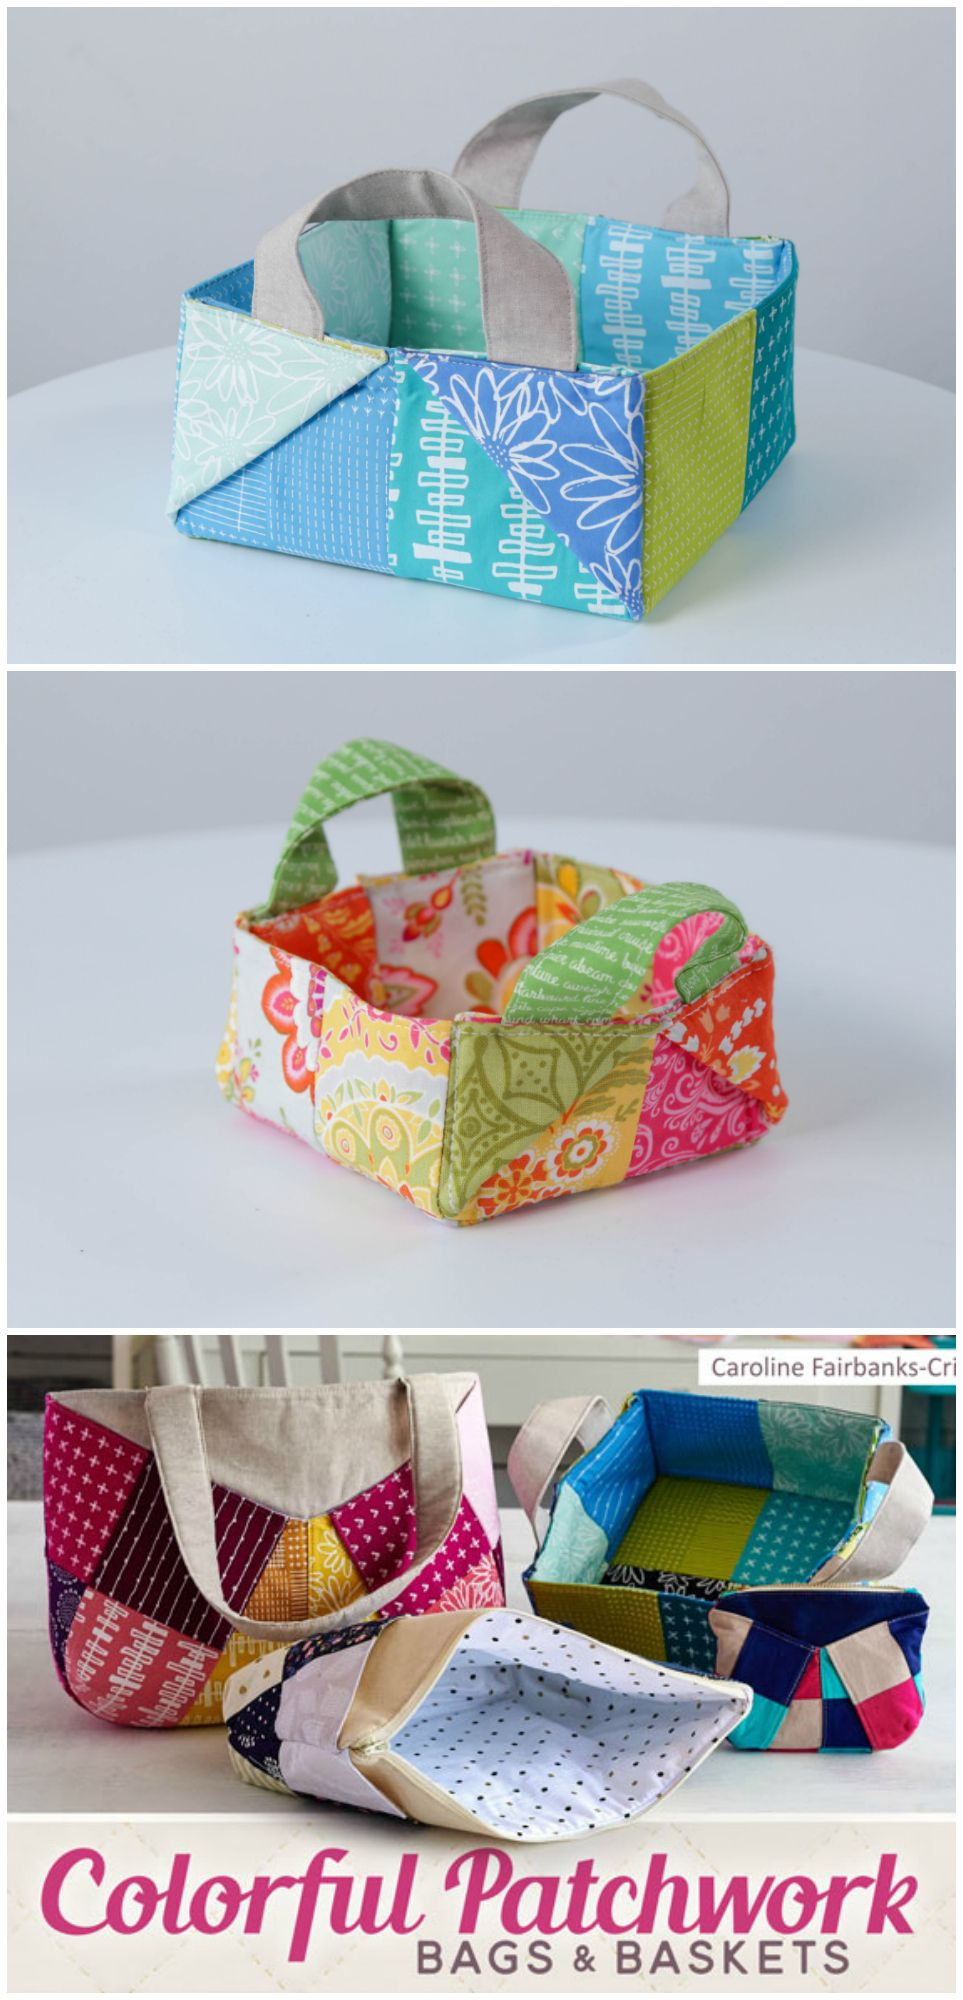 How to sew colorful patchwork bags and baskets. 3 different projects ...